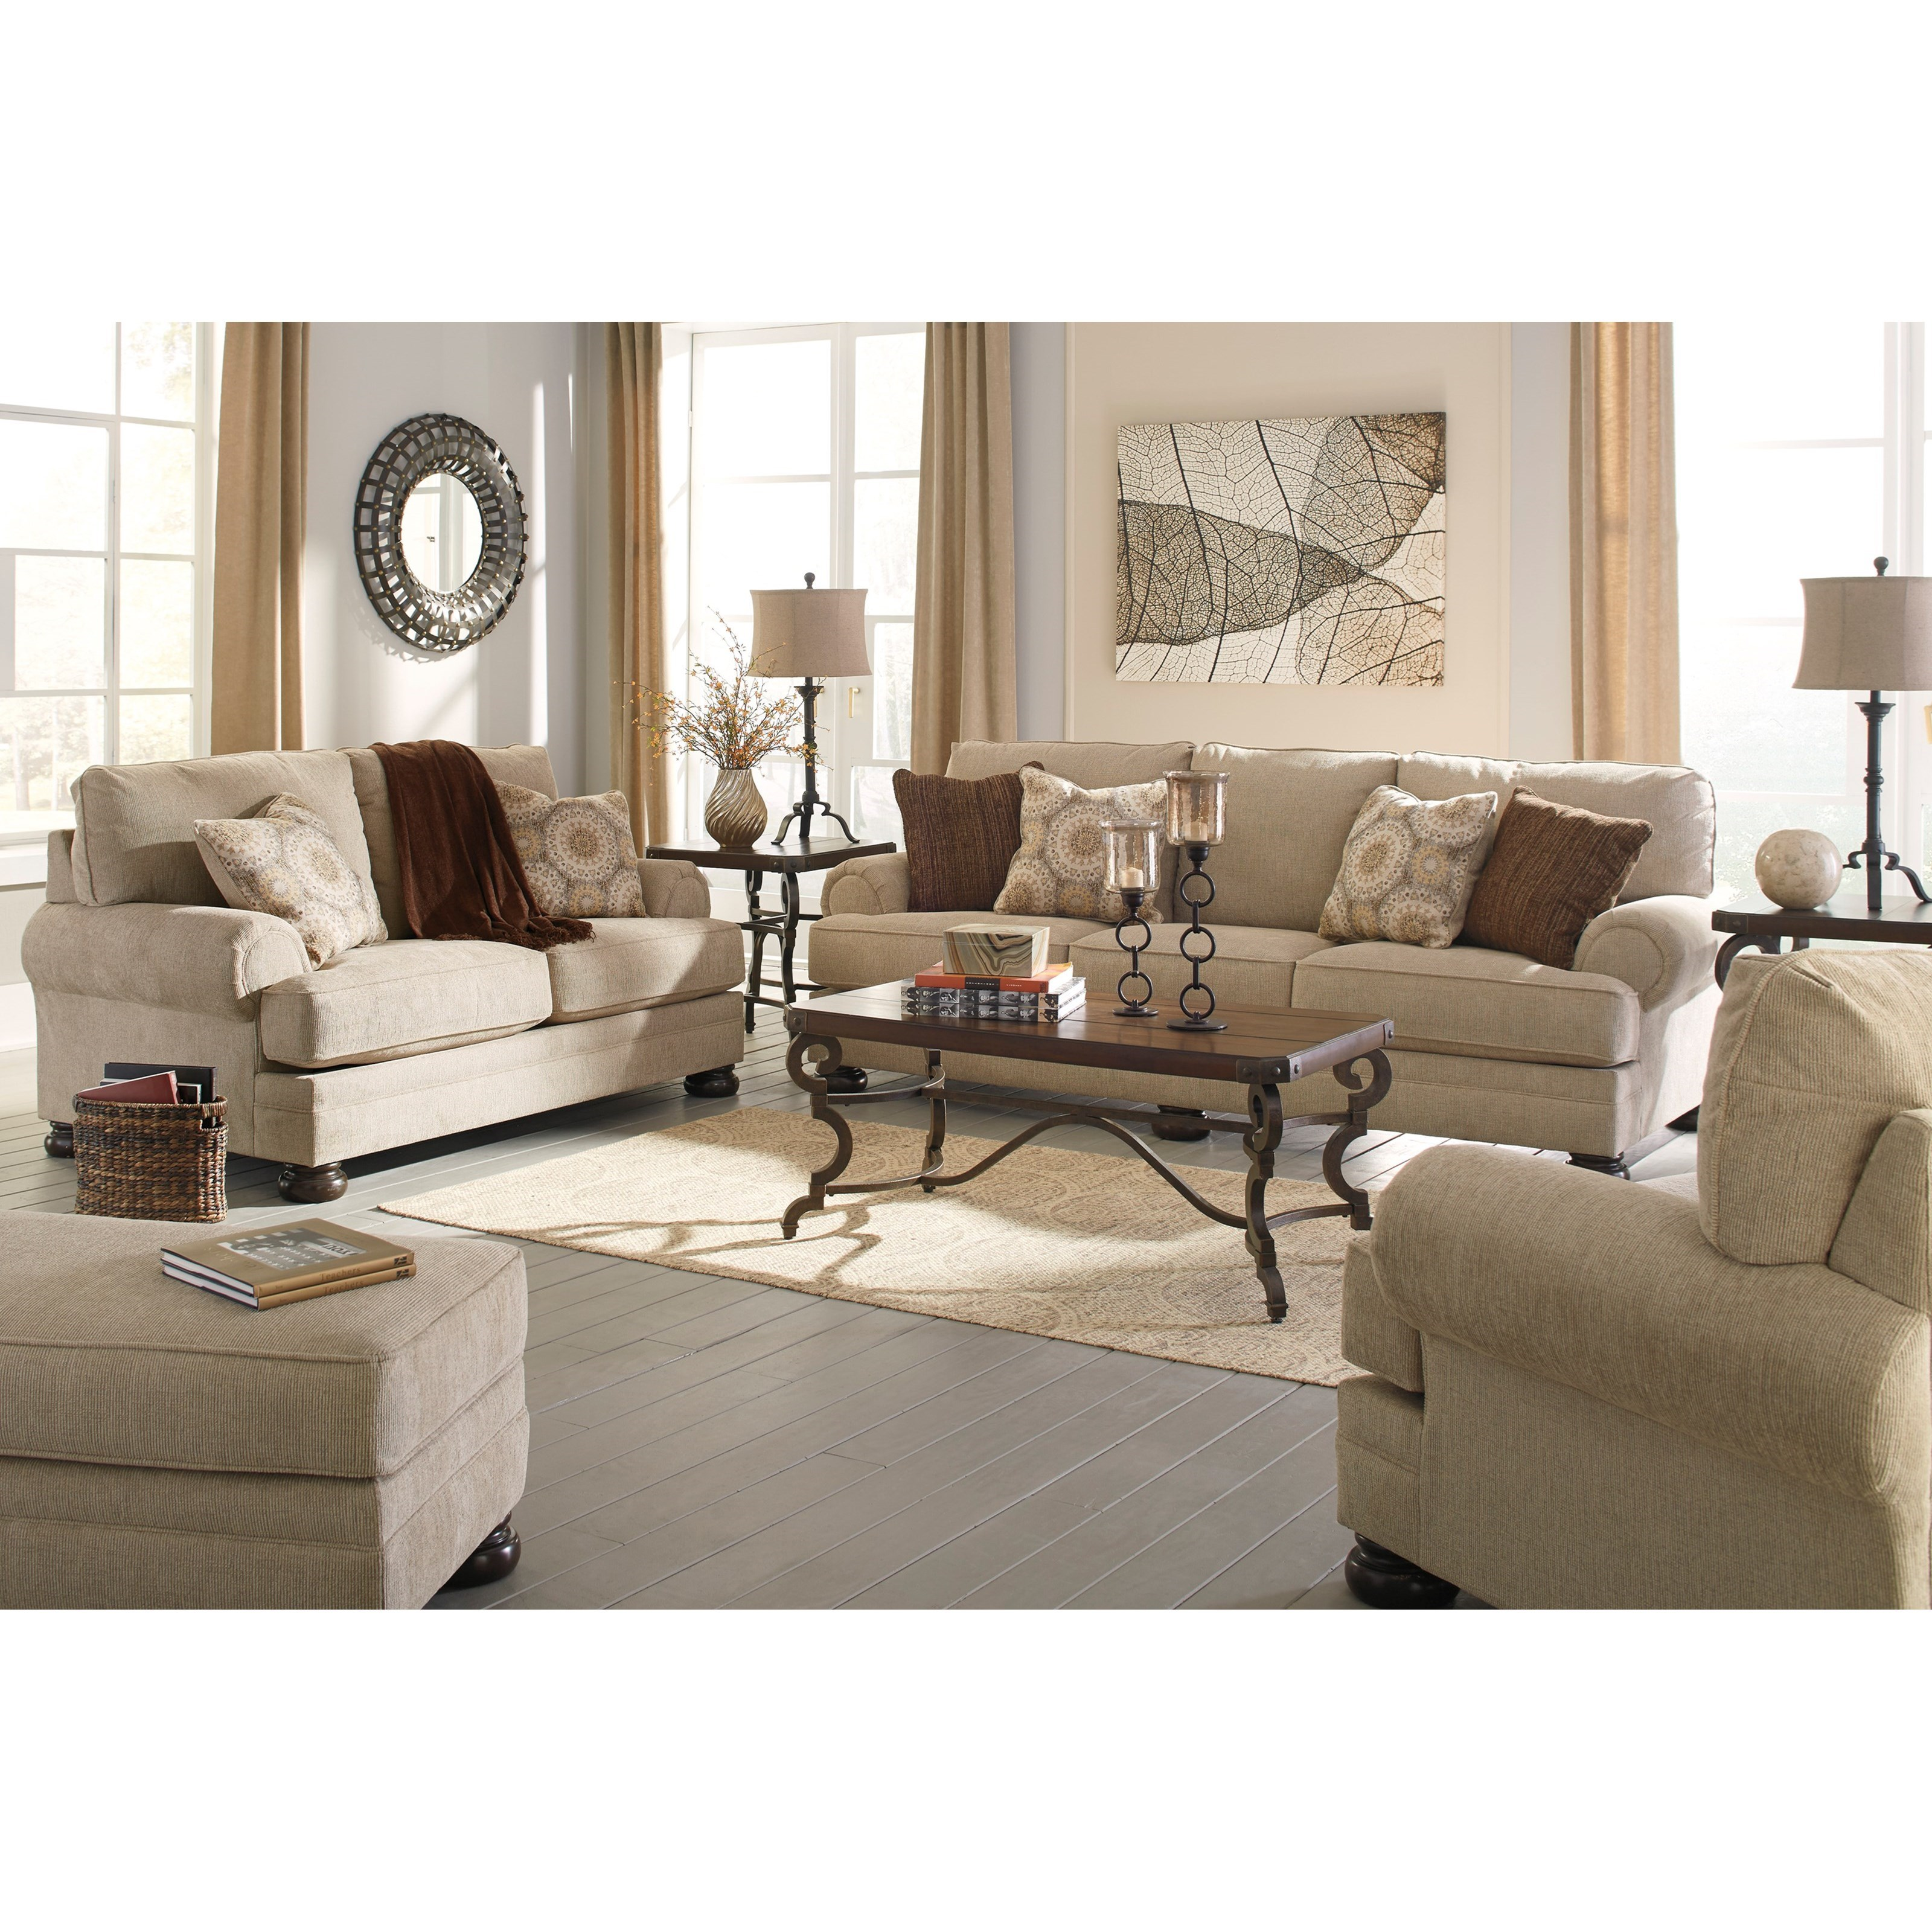 Benchcraft Quarry Hill Stationary Living Room Group - Item Number: 38701 Living Room Group 4